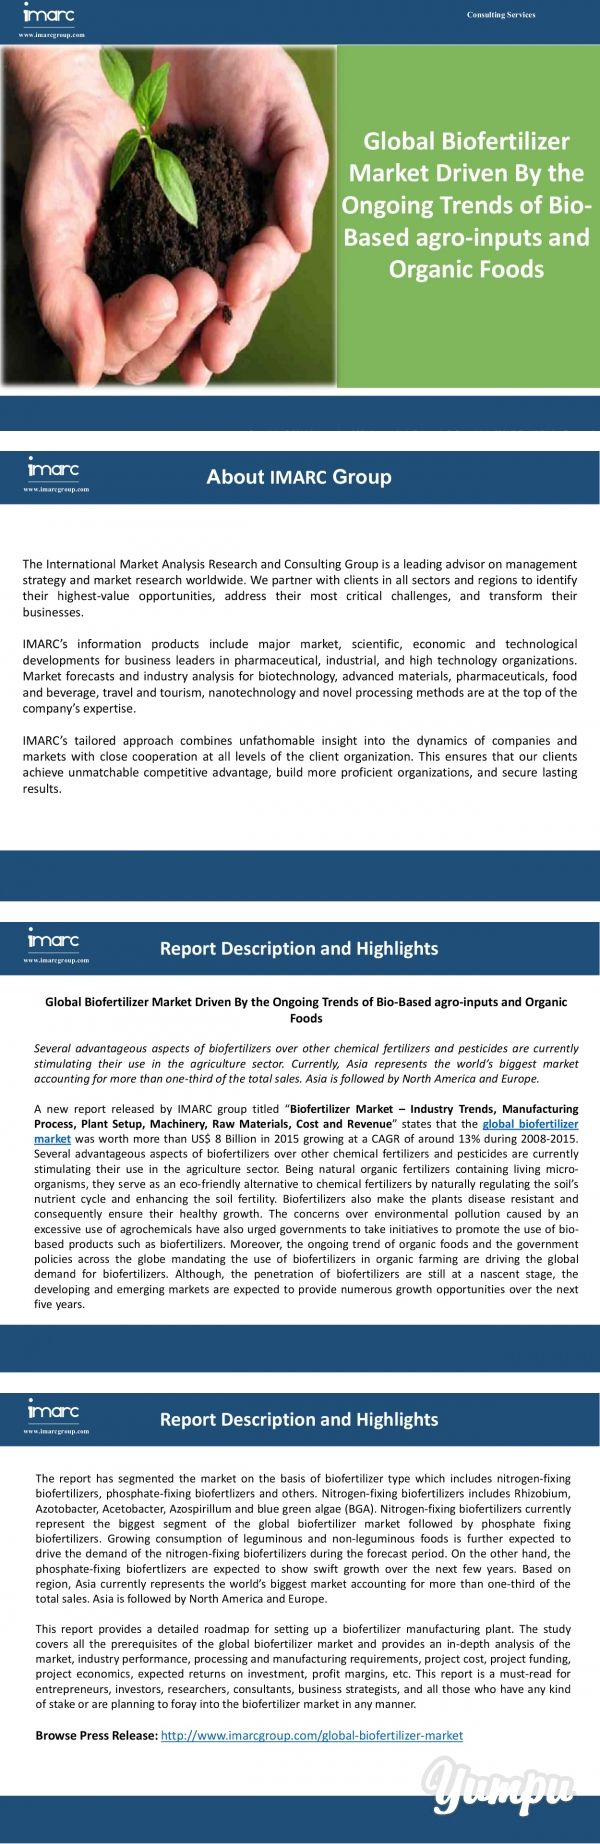 "Global Biofertilizer Market Analysis | Size | Research Report - Magazine with 10 pages: A new report released by IMARC group titled ""Biofertilizer Market – Industry Trends, Manufacturing Process, Plant Setup, Machinery, Raw Materials, Cost and Revenue"" states that the global biofertilizer market was worth more than US$ 8 Billion in 2015 growing at a CAGR of around 13% during 2008-2015. Read more here: http://bit.ly/2aEZ7HX"